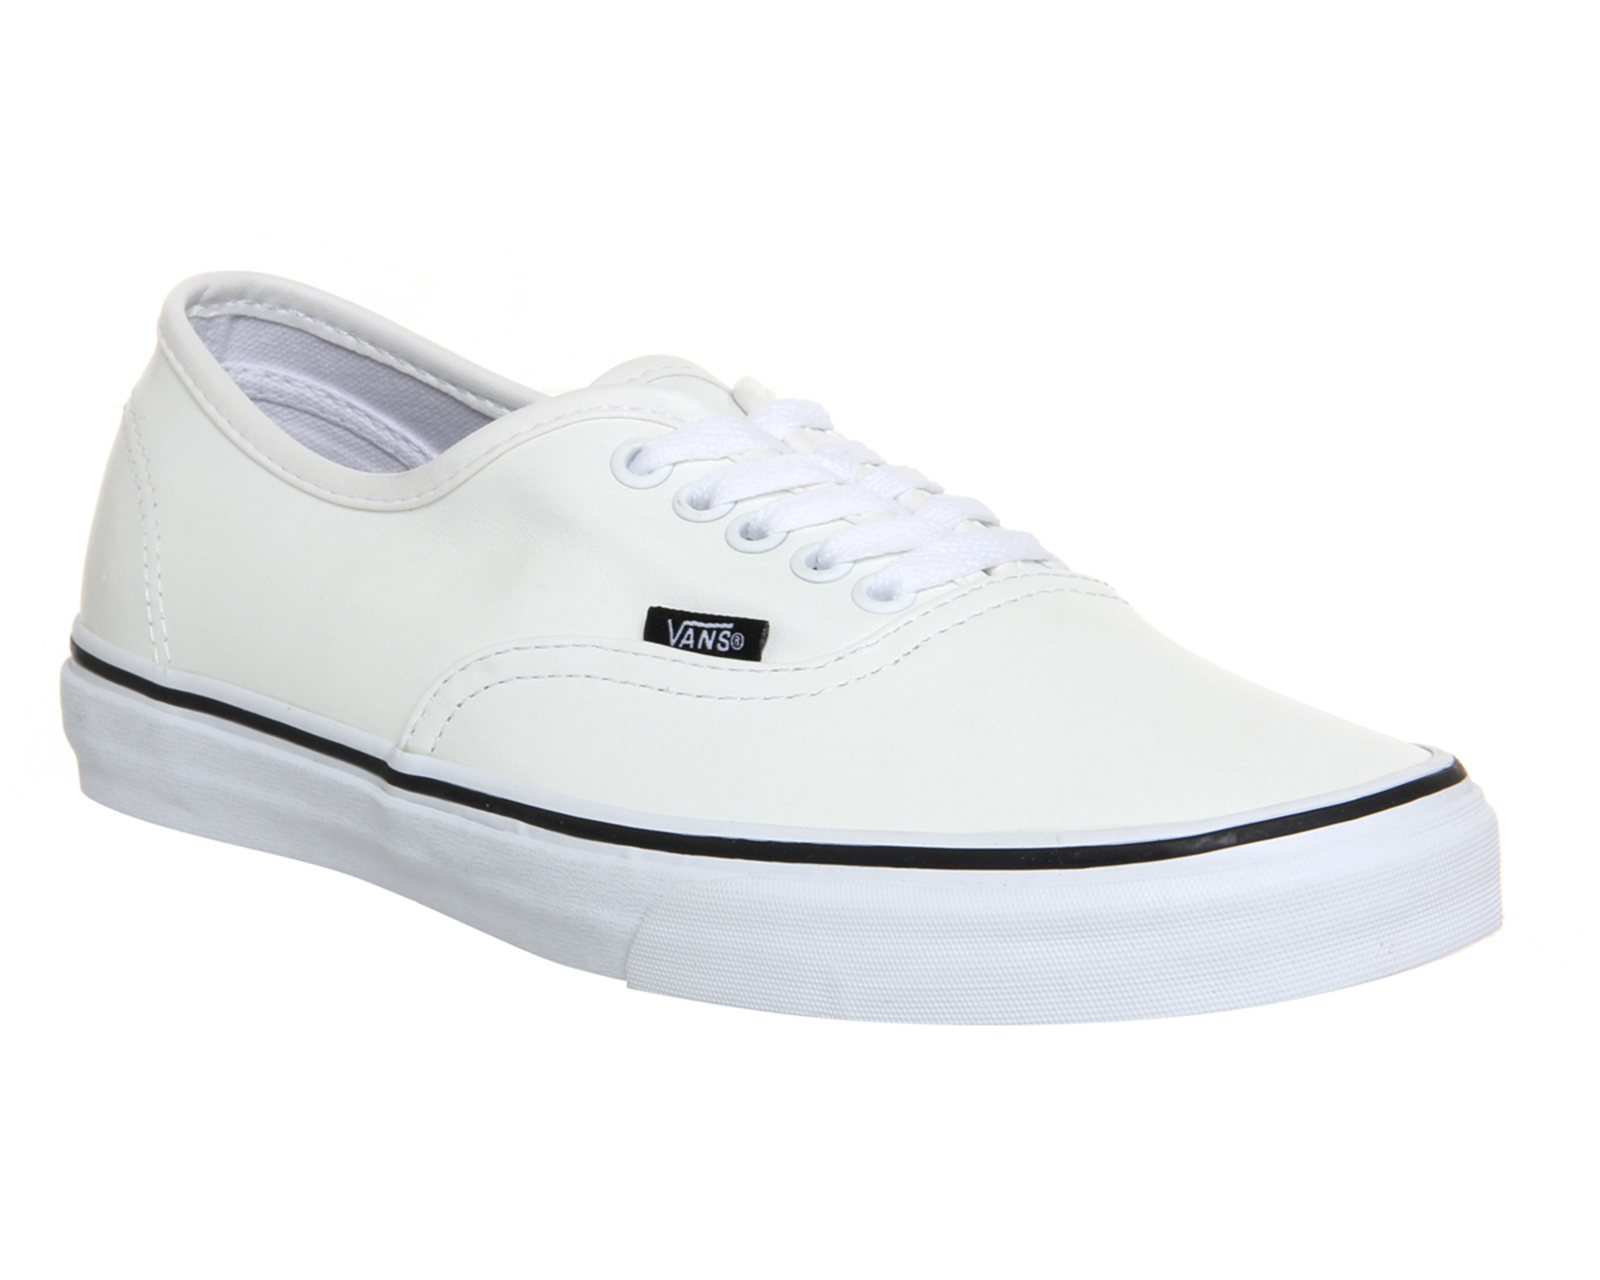 mens vans authentic leather white black st trainers shoes